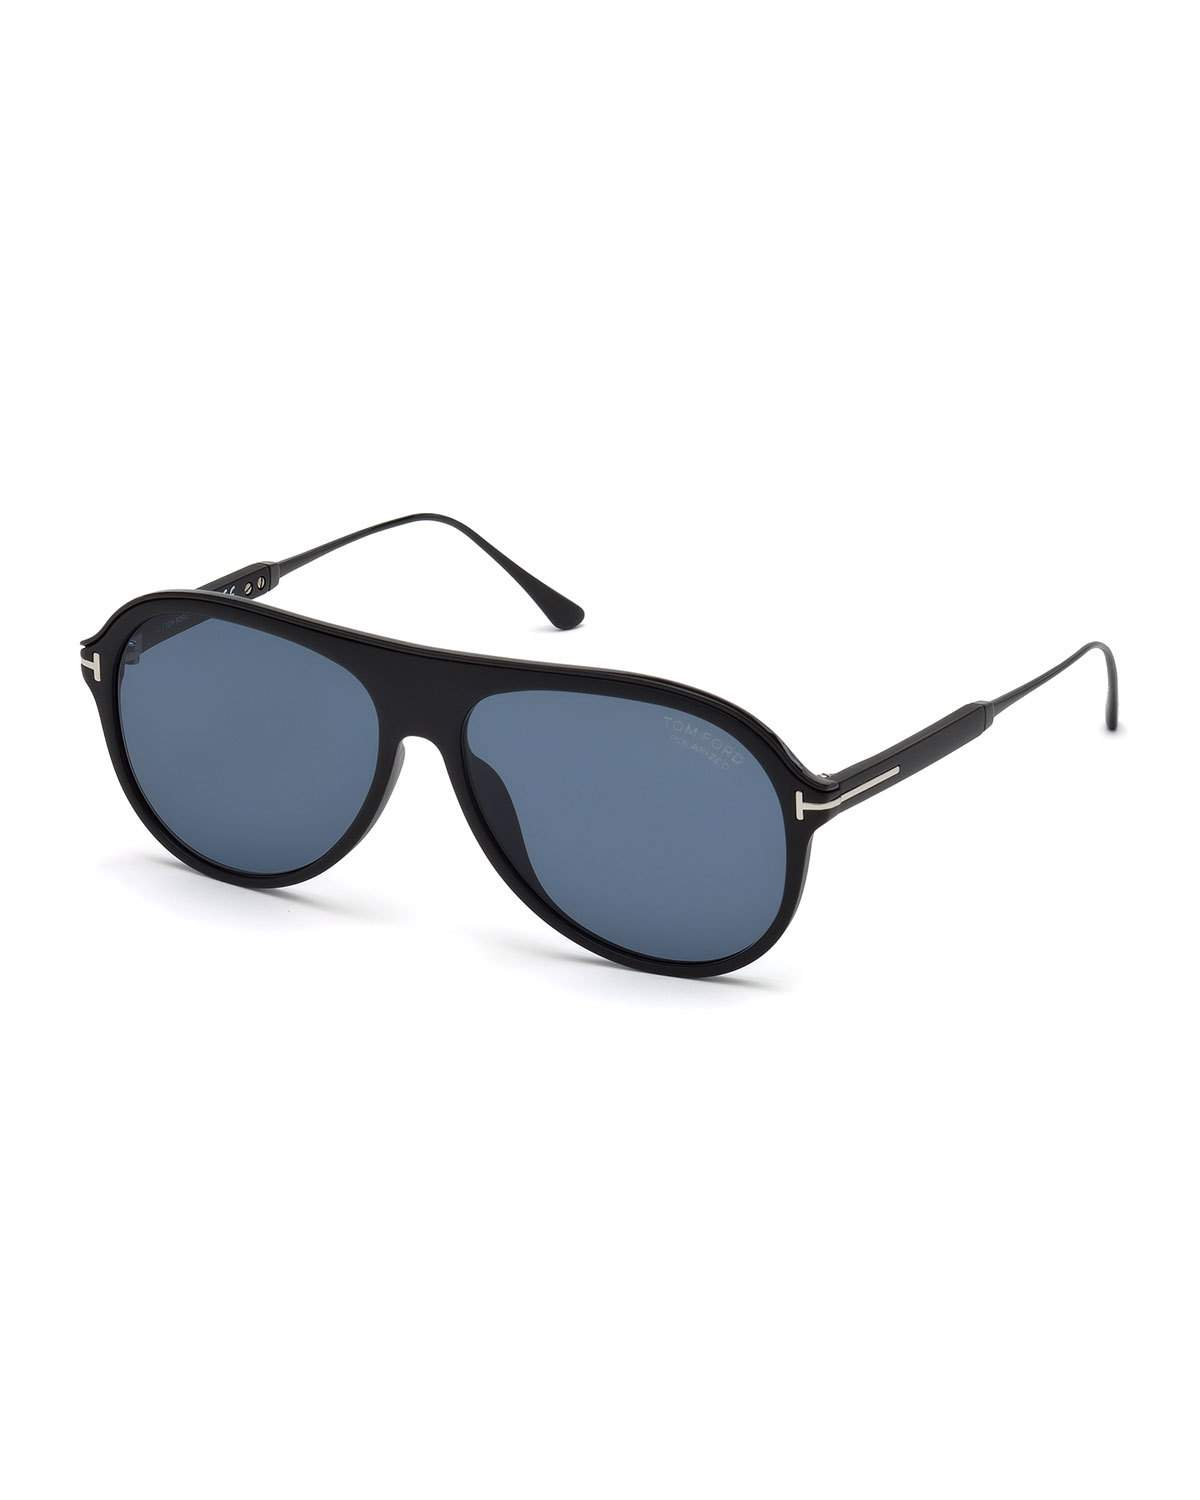 f65c5539da12 Tom Ford Men s Shield Acetate Sunglasses